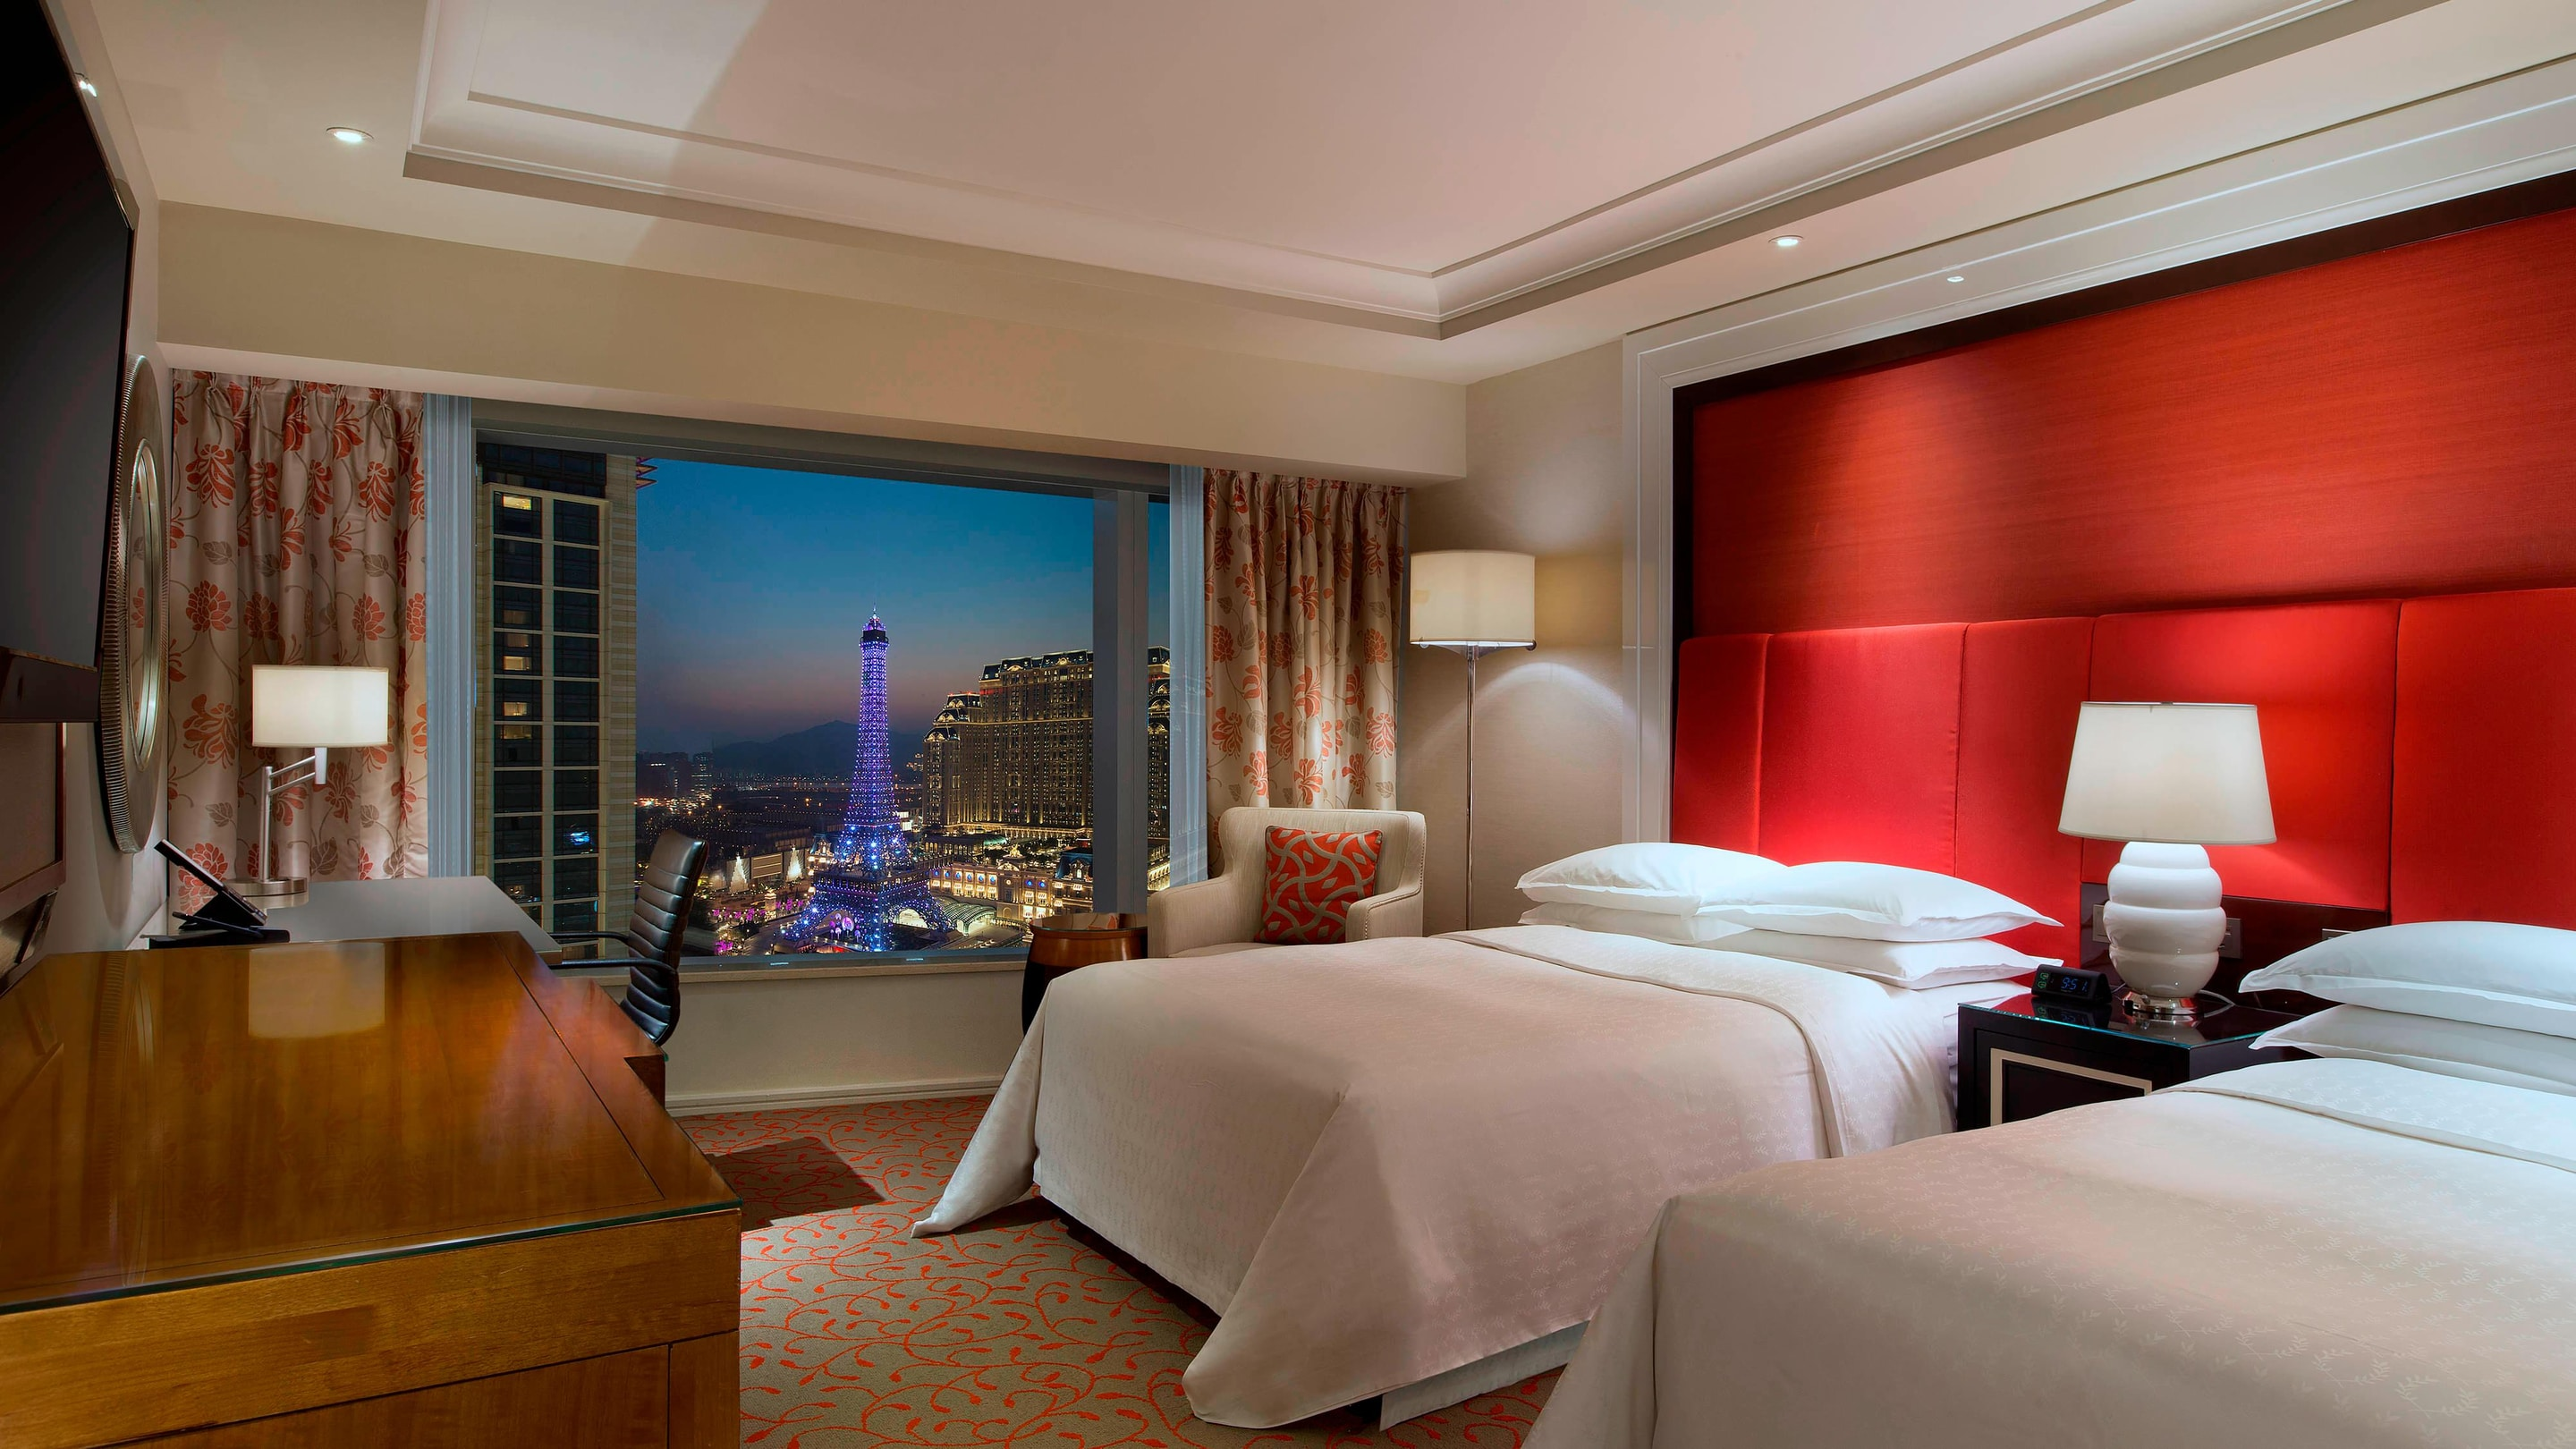 Twin deluxe guest room with eiffel tower view